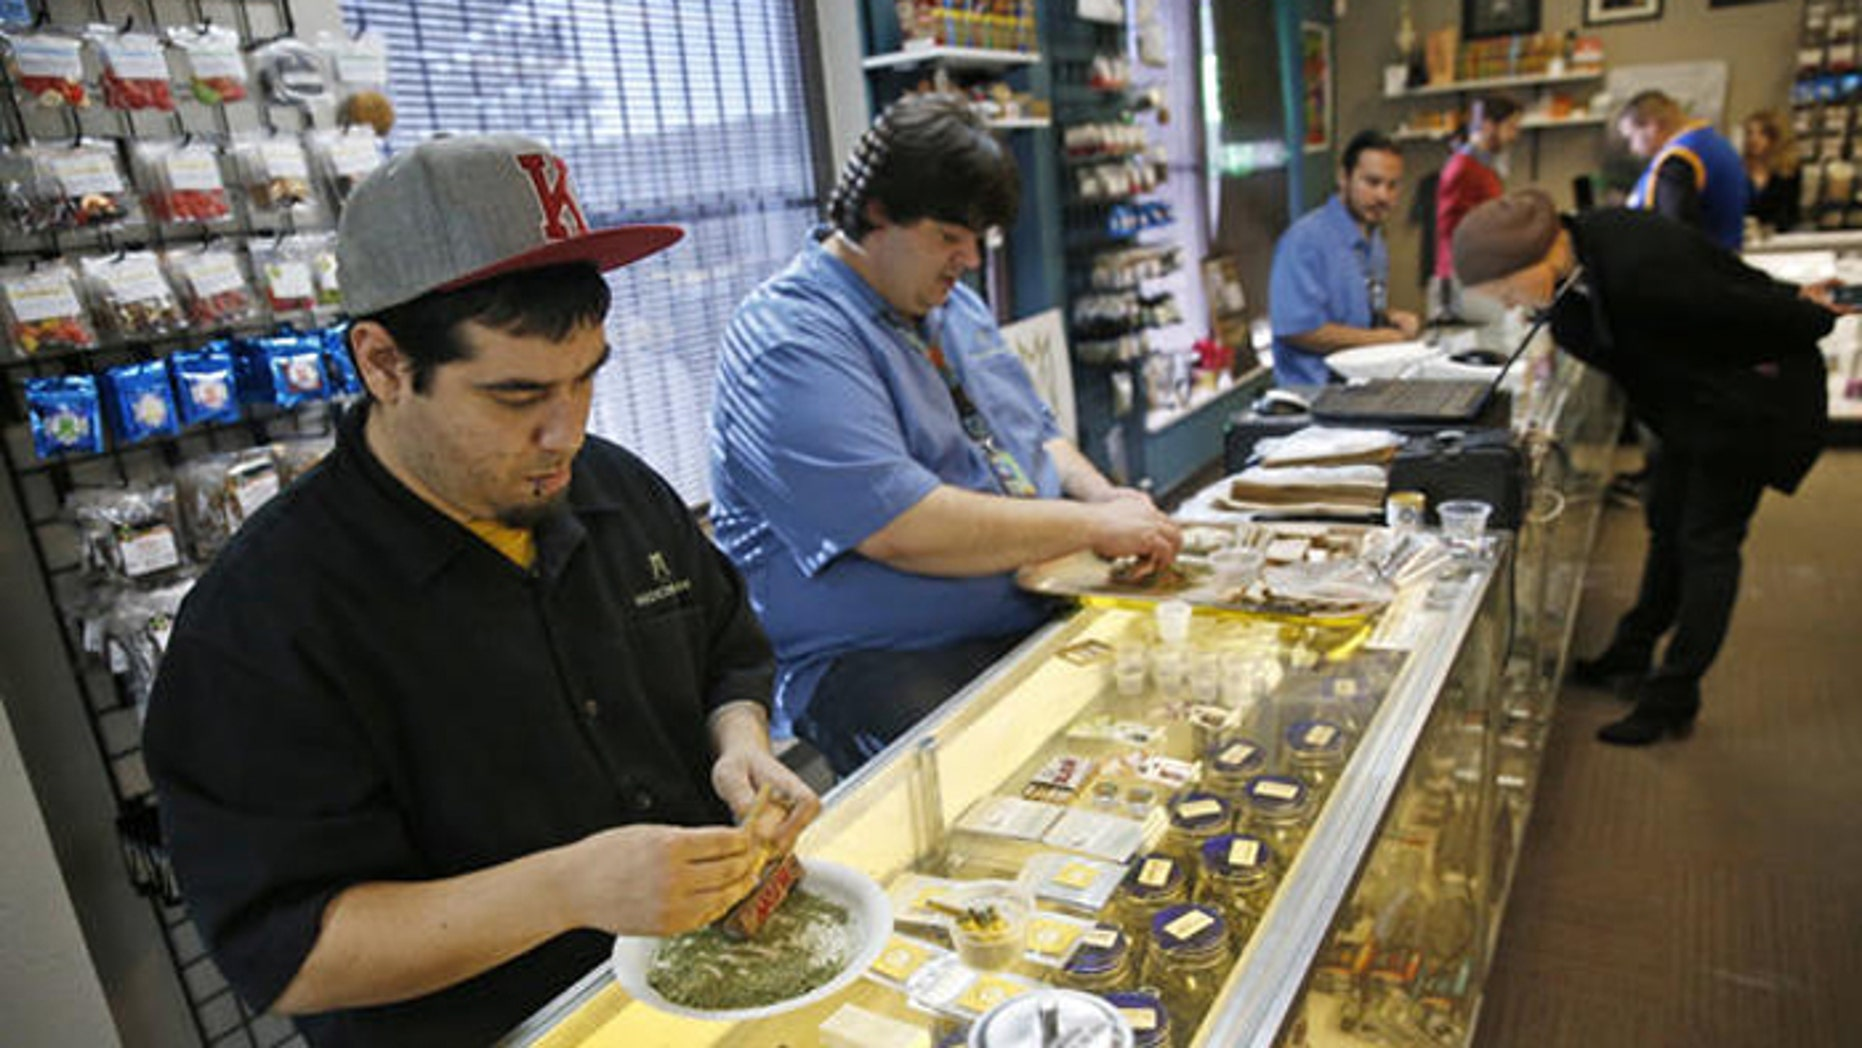 Employees roll joints behind the sales counter at Medicine Man marijuana dispensary in Denver. (AP)